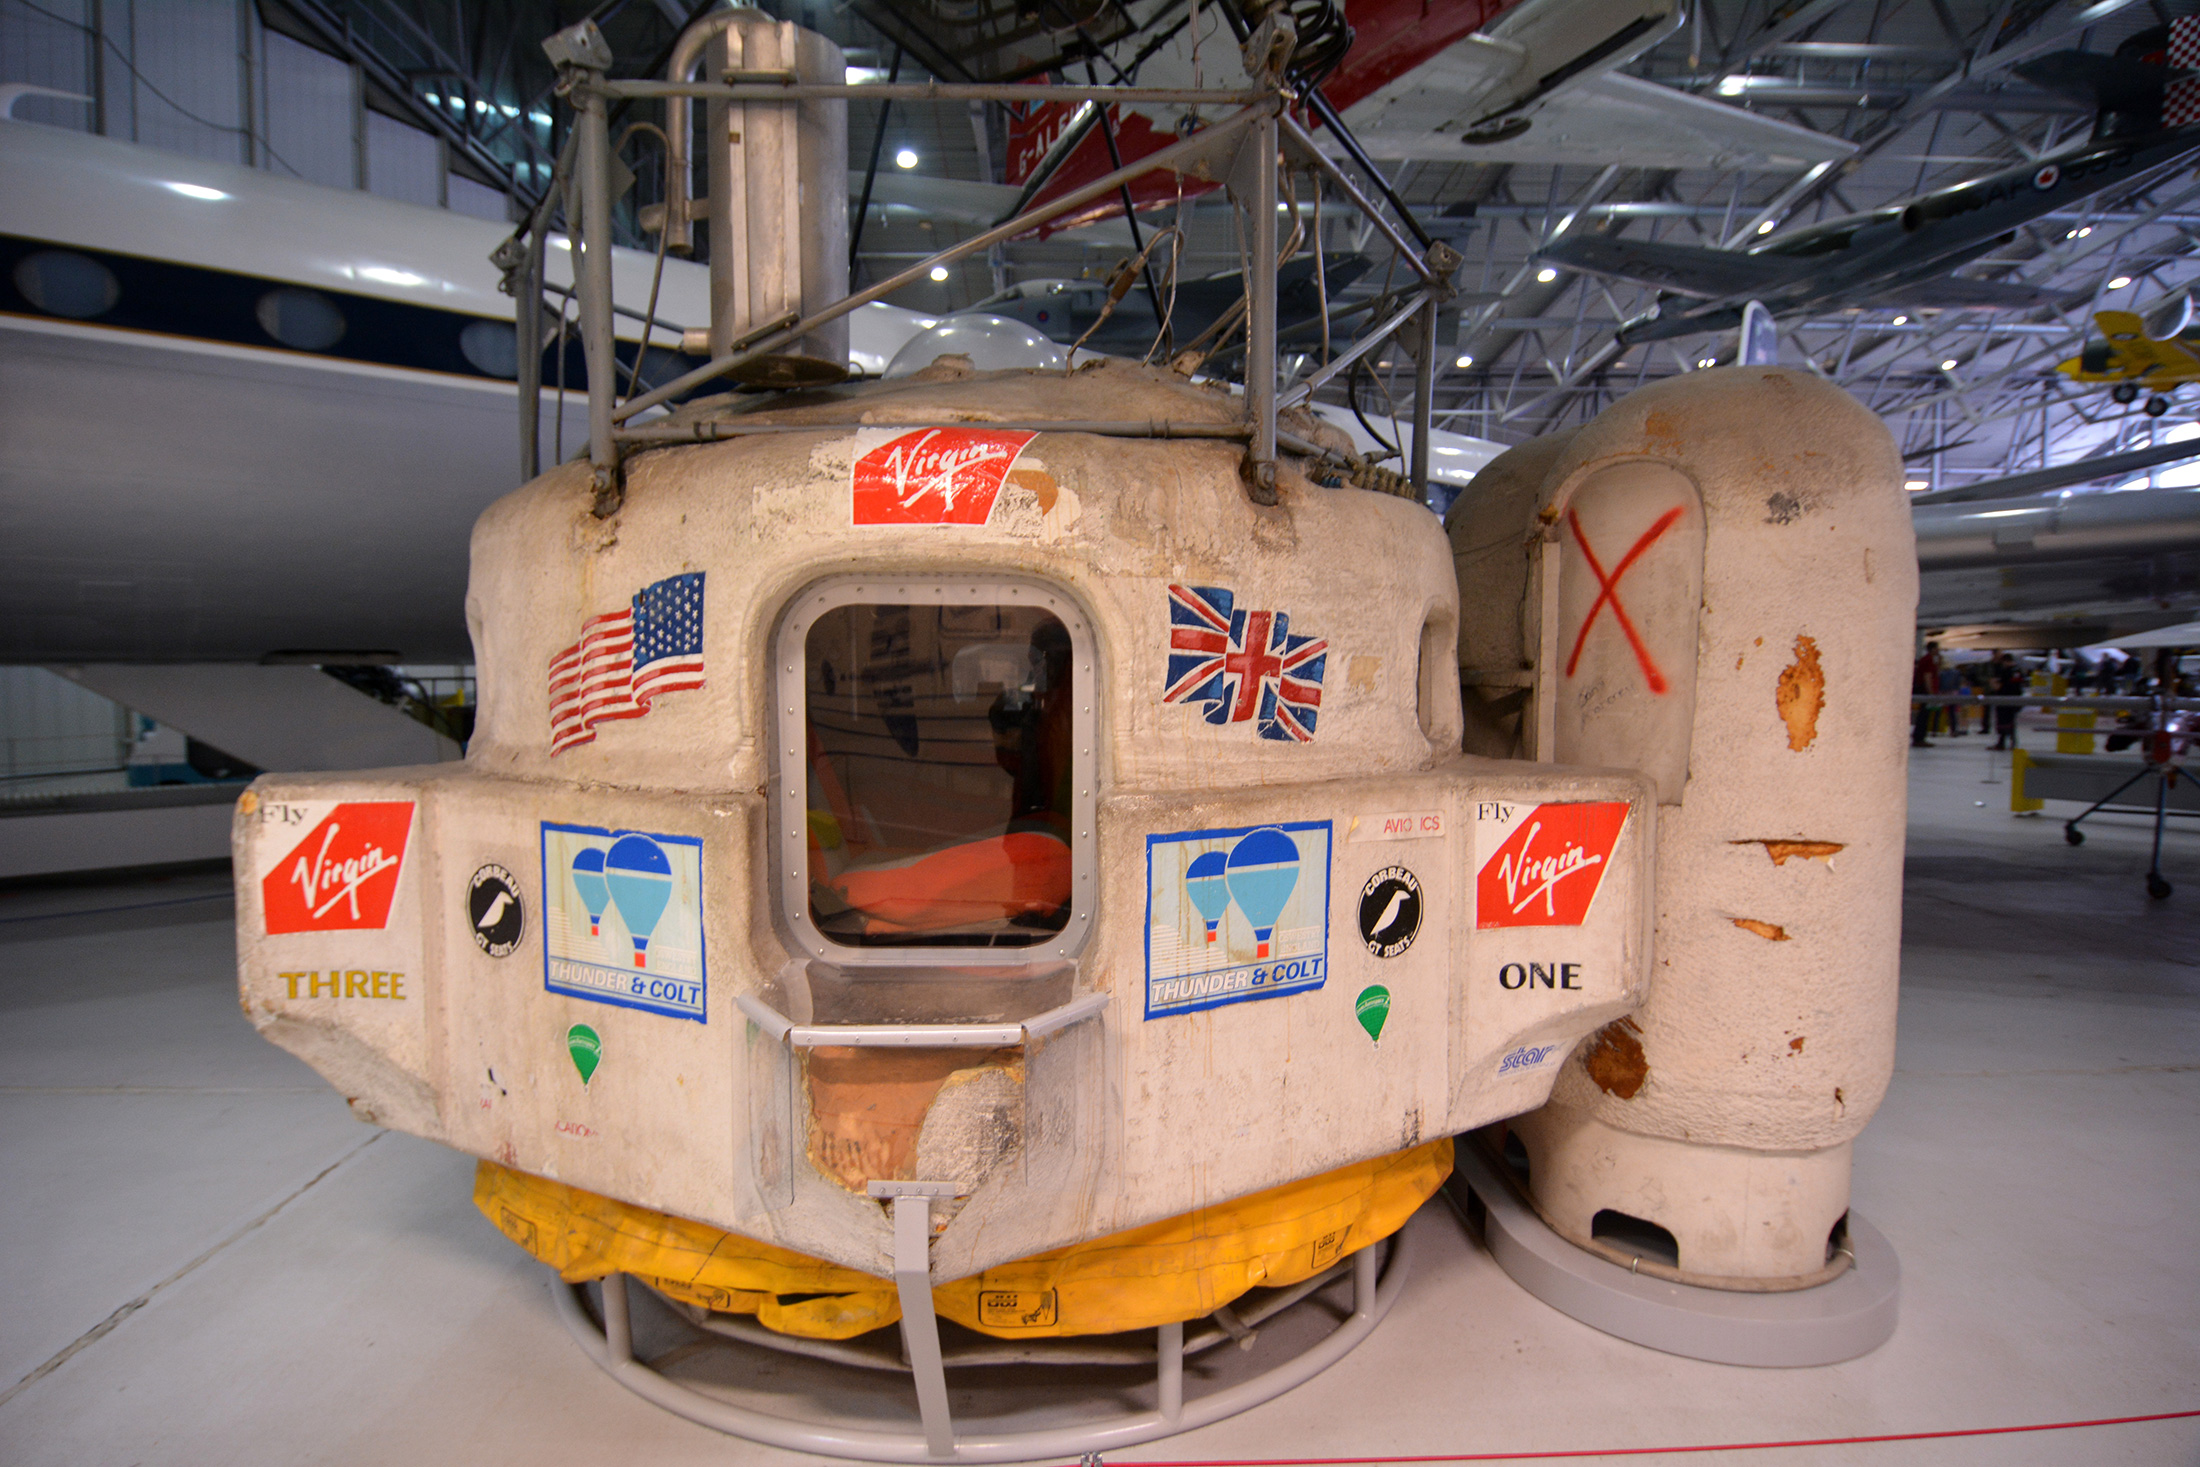 The capsule from the Virgin Atlantic Flyer, which Branson and a partner flew across the Atlantic Ocean in 1987. (Photo: Courtesy MoorwaySouth/Wikimedia)